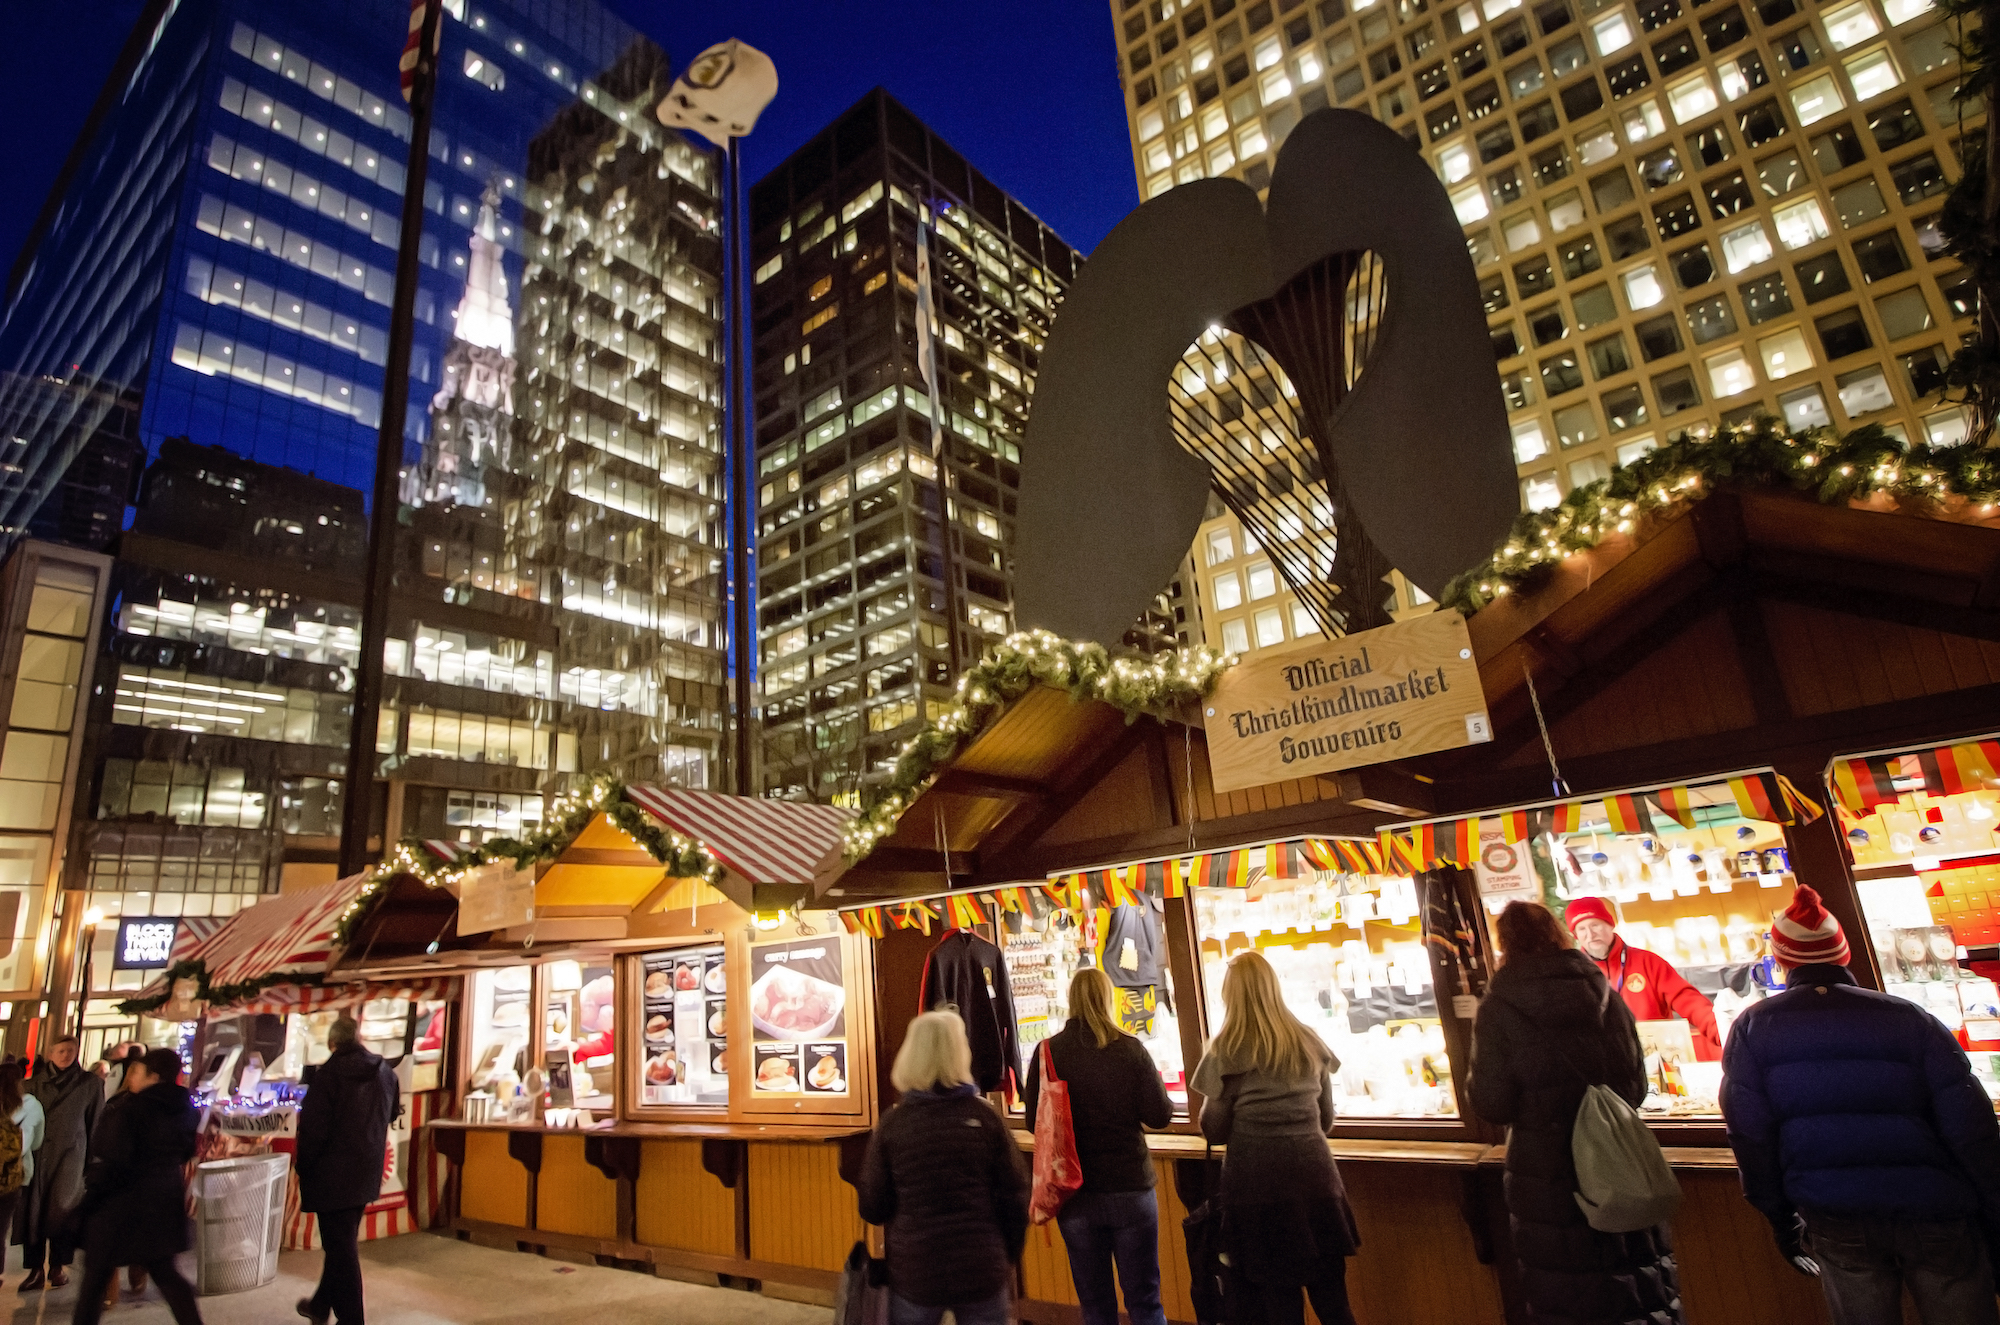 Visitors line up in front of a row of brightly-lit booths with lit-up skyscrapers in the background